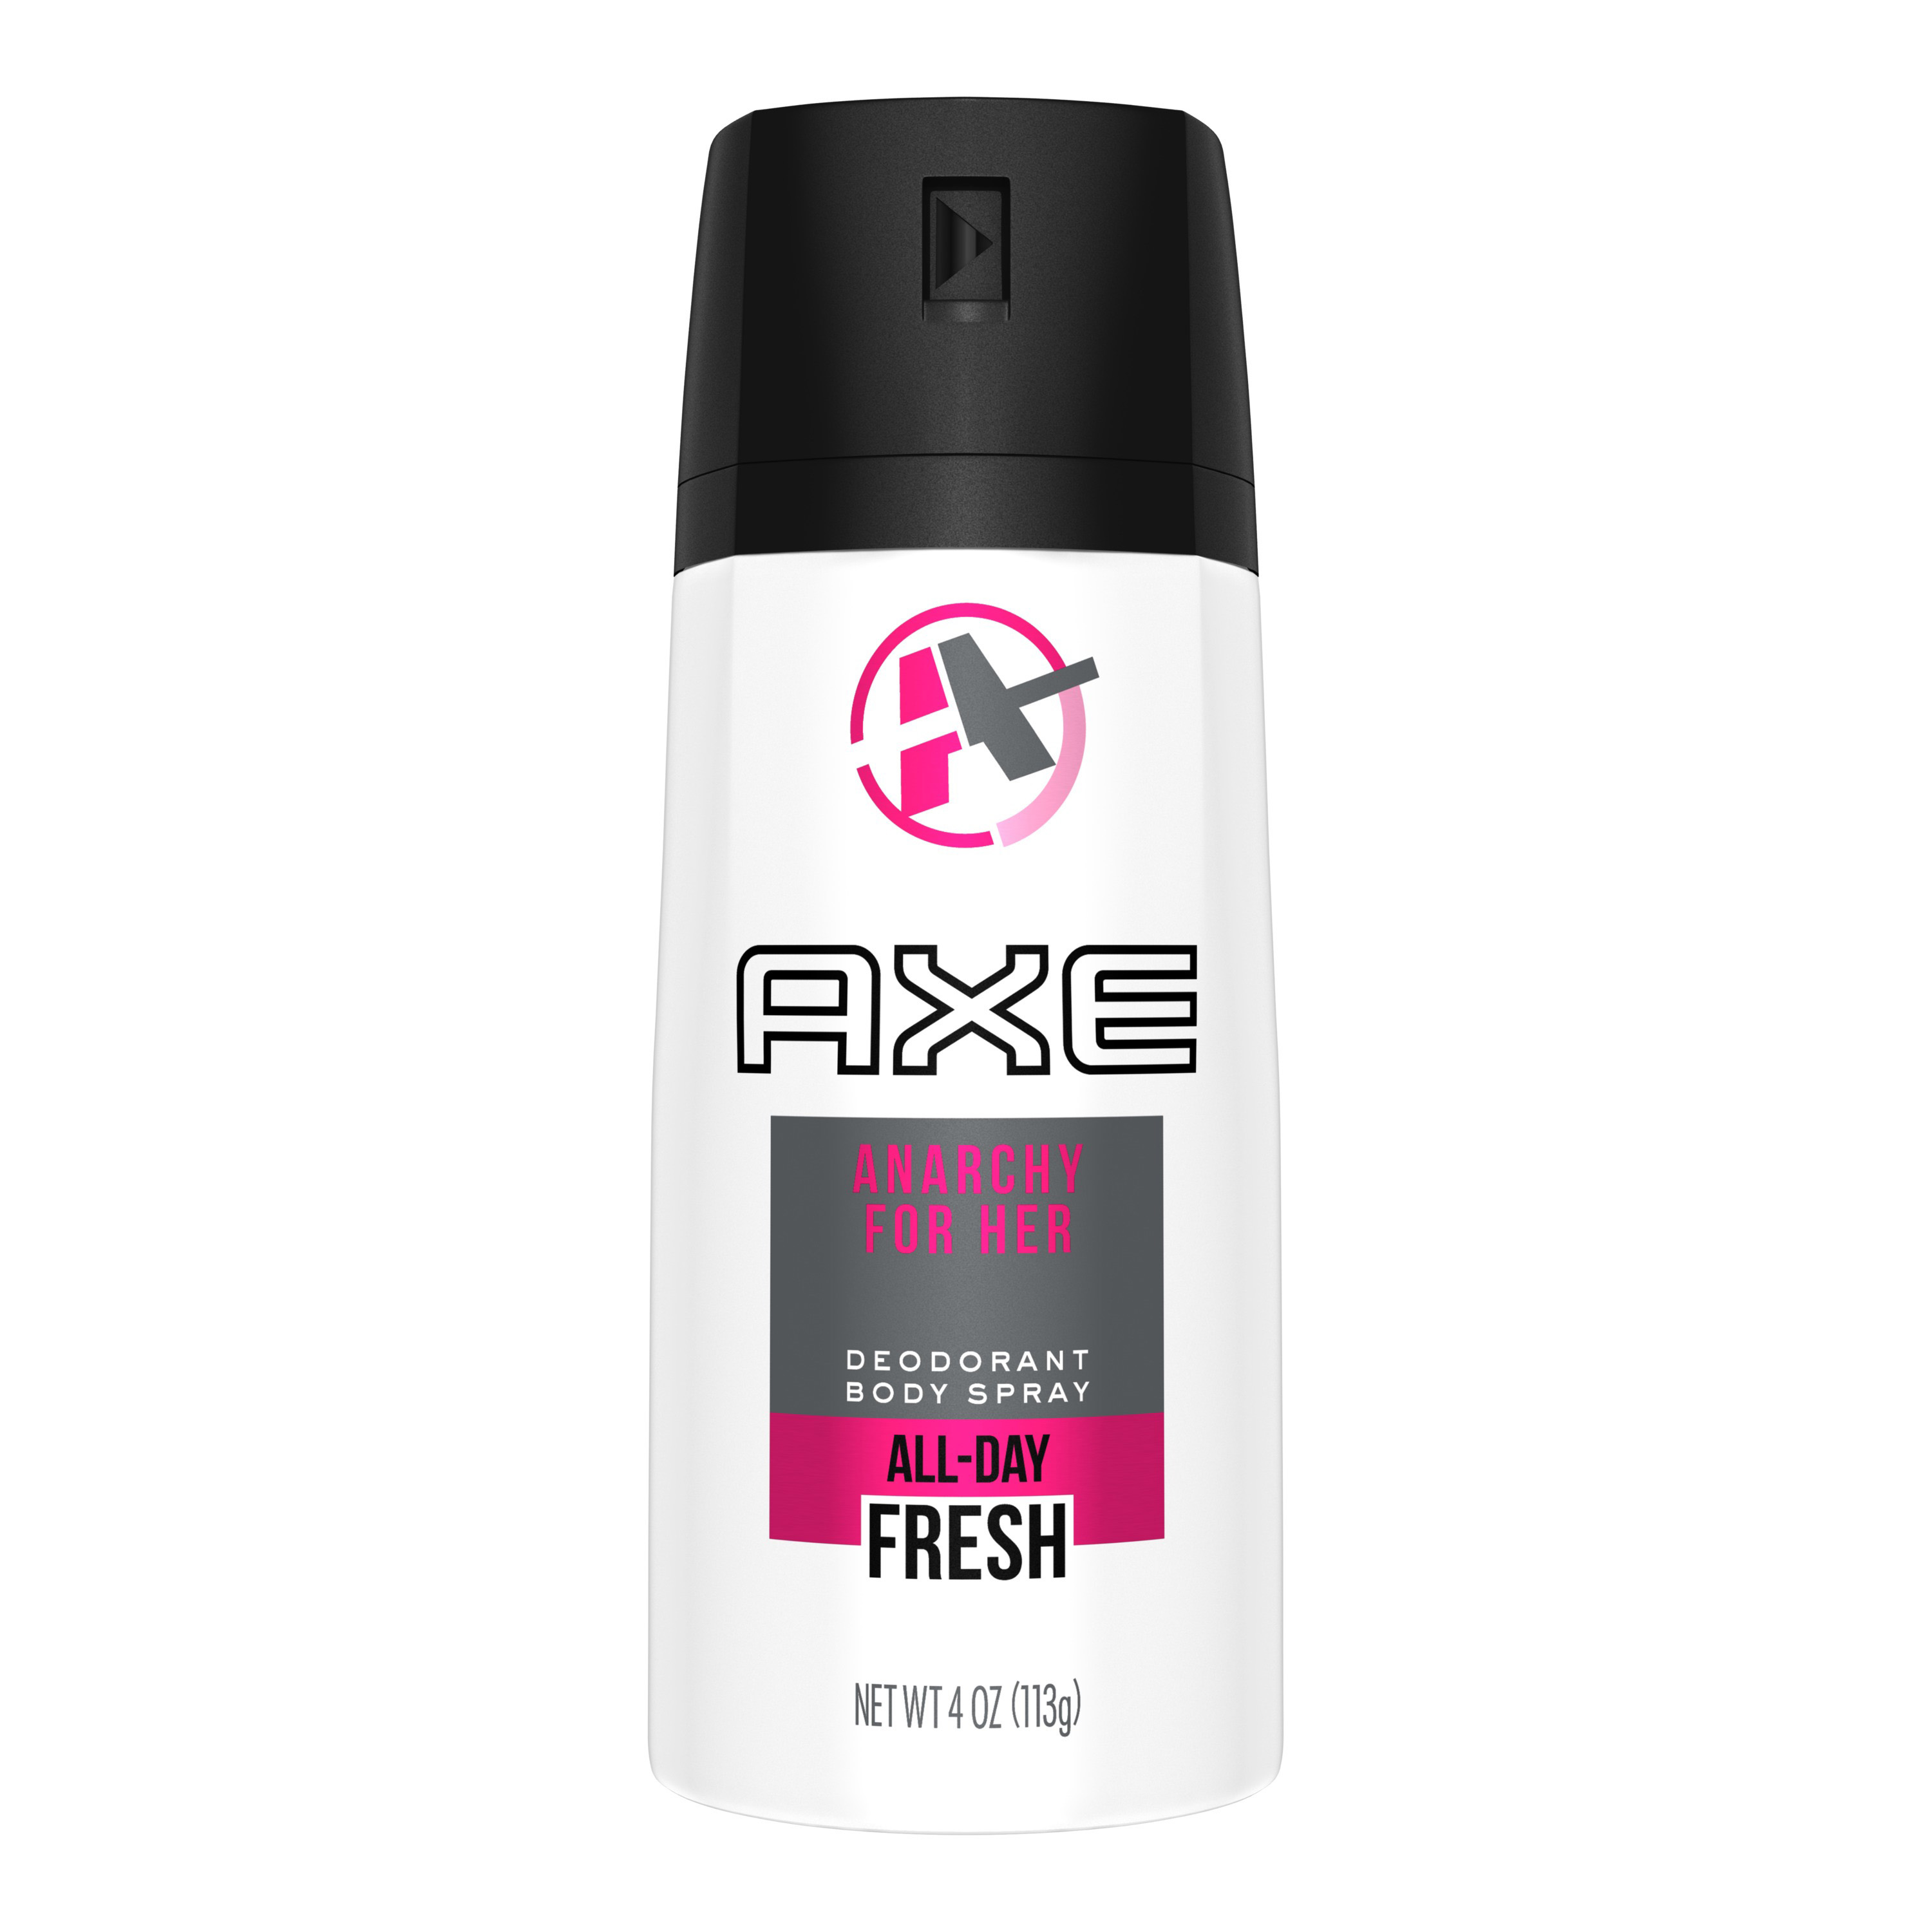 AXE Anarchy for Her Body Spray for Women, 4 oz